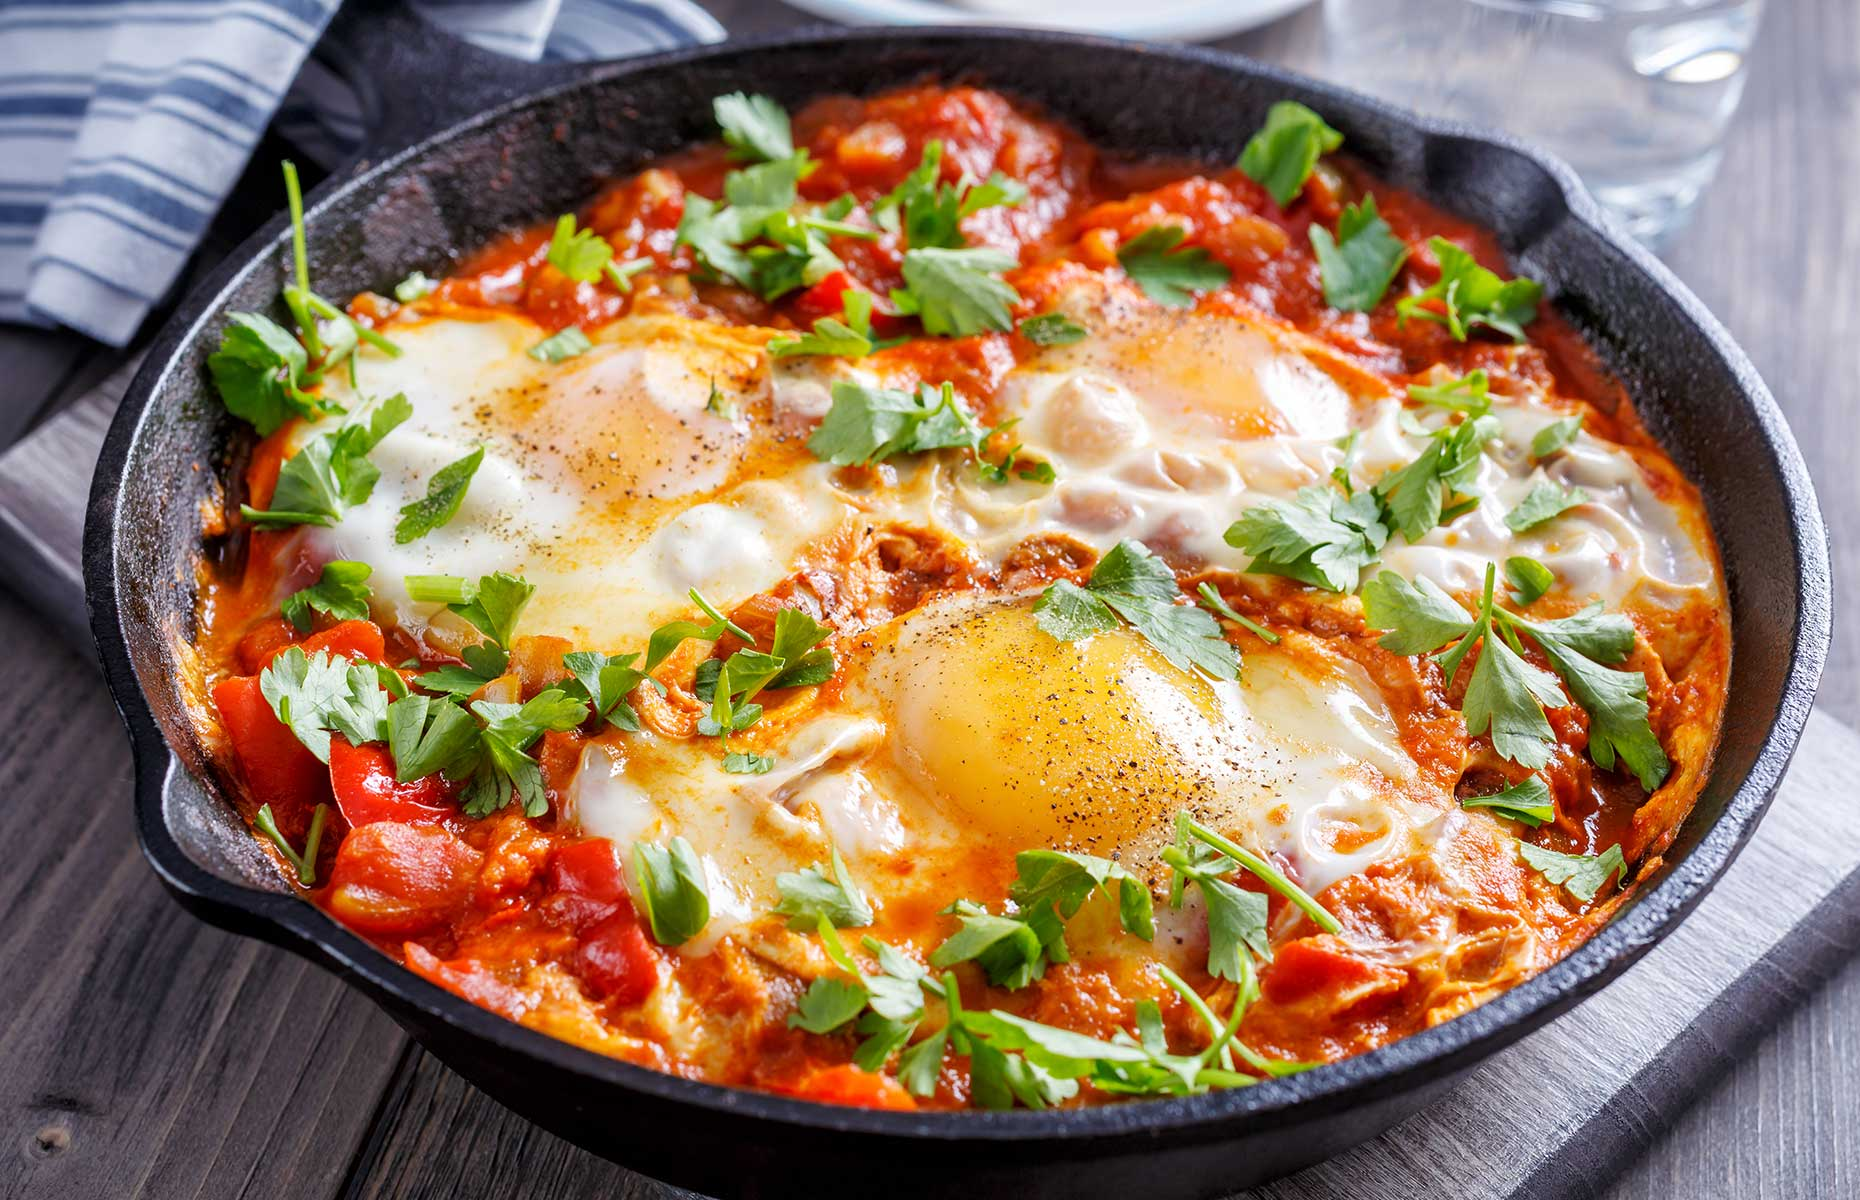 Shakshuka is a typical breakfast cooked on the stove